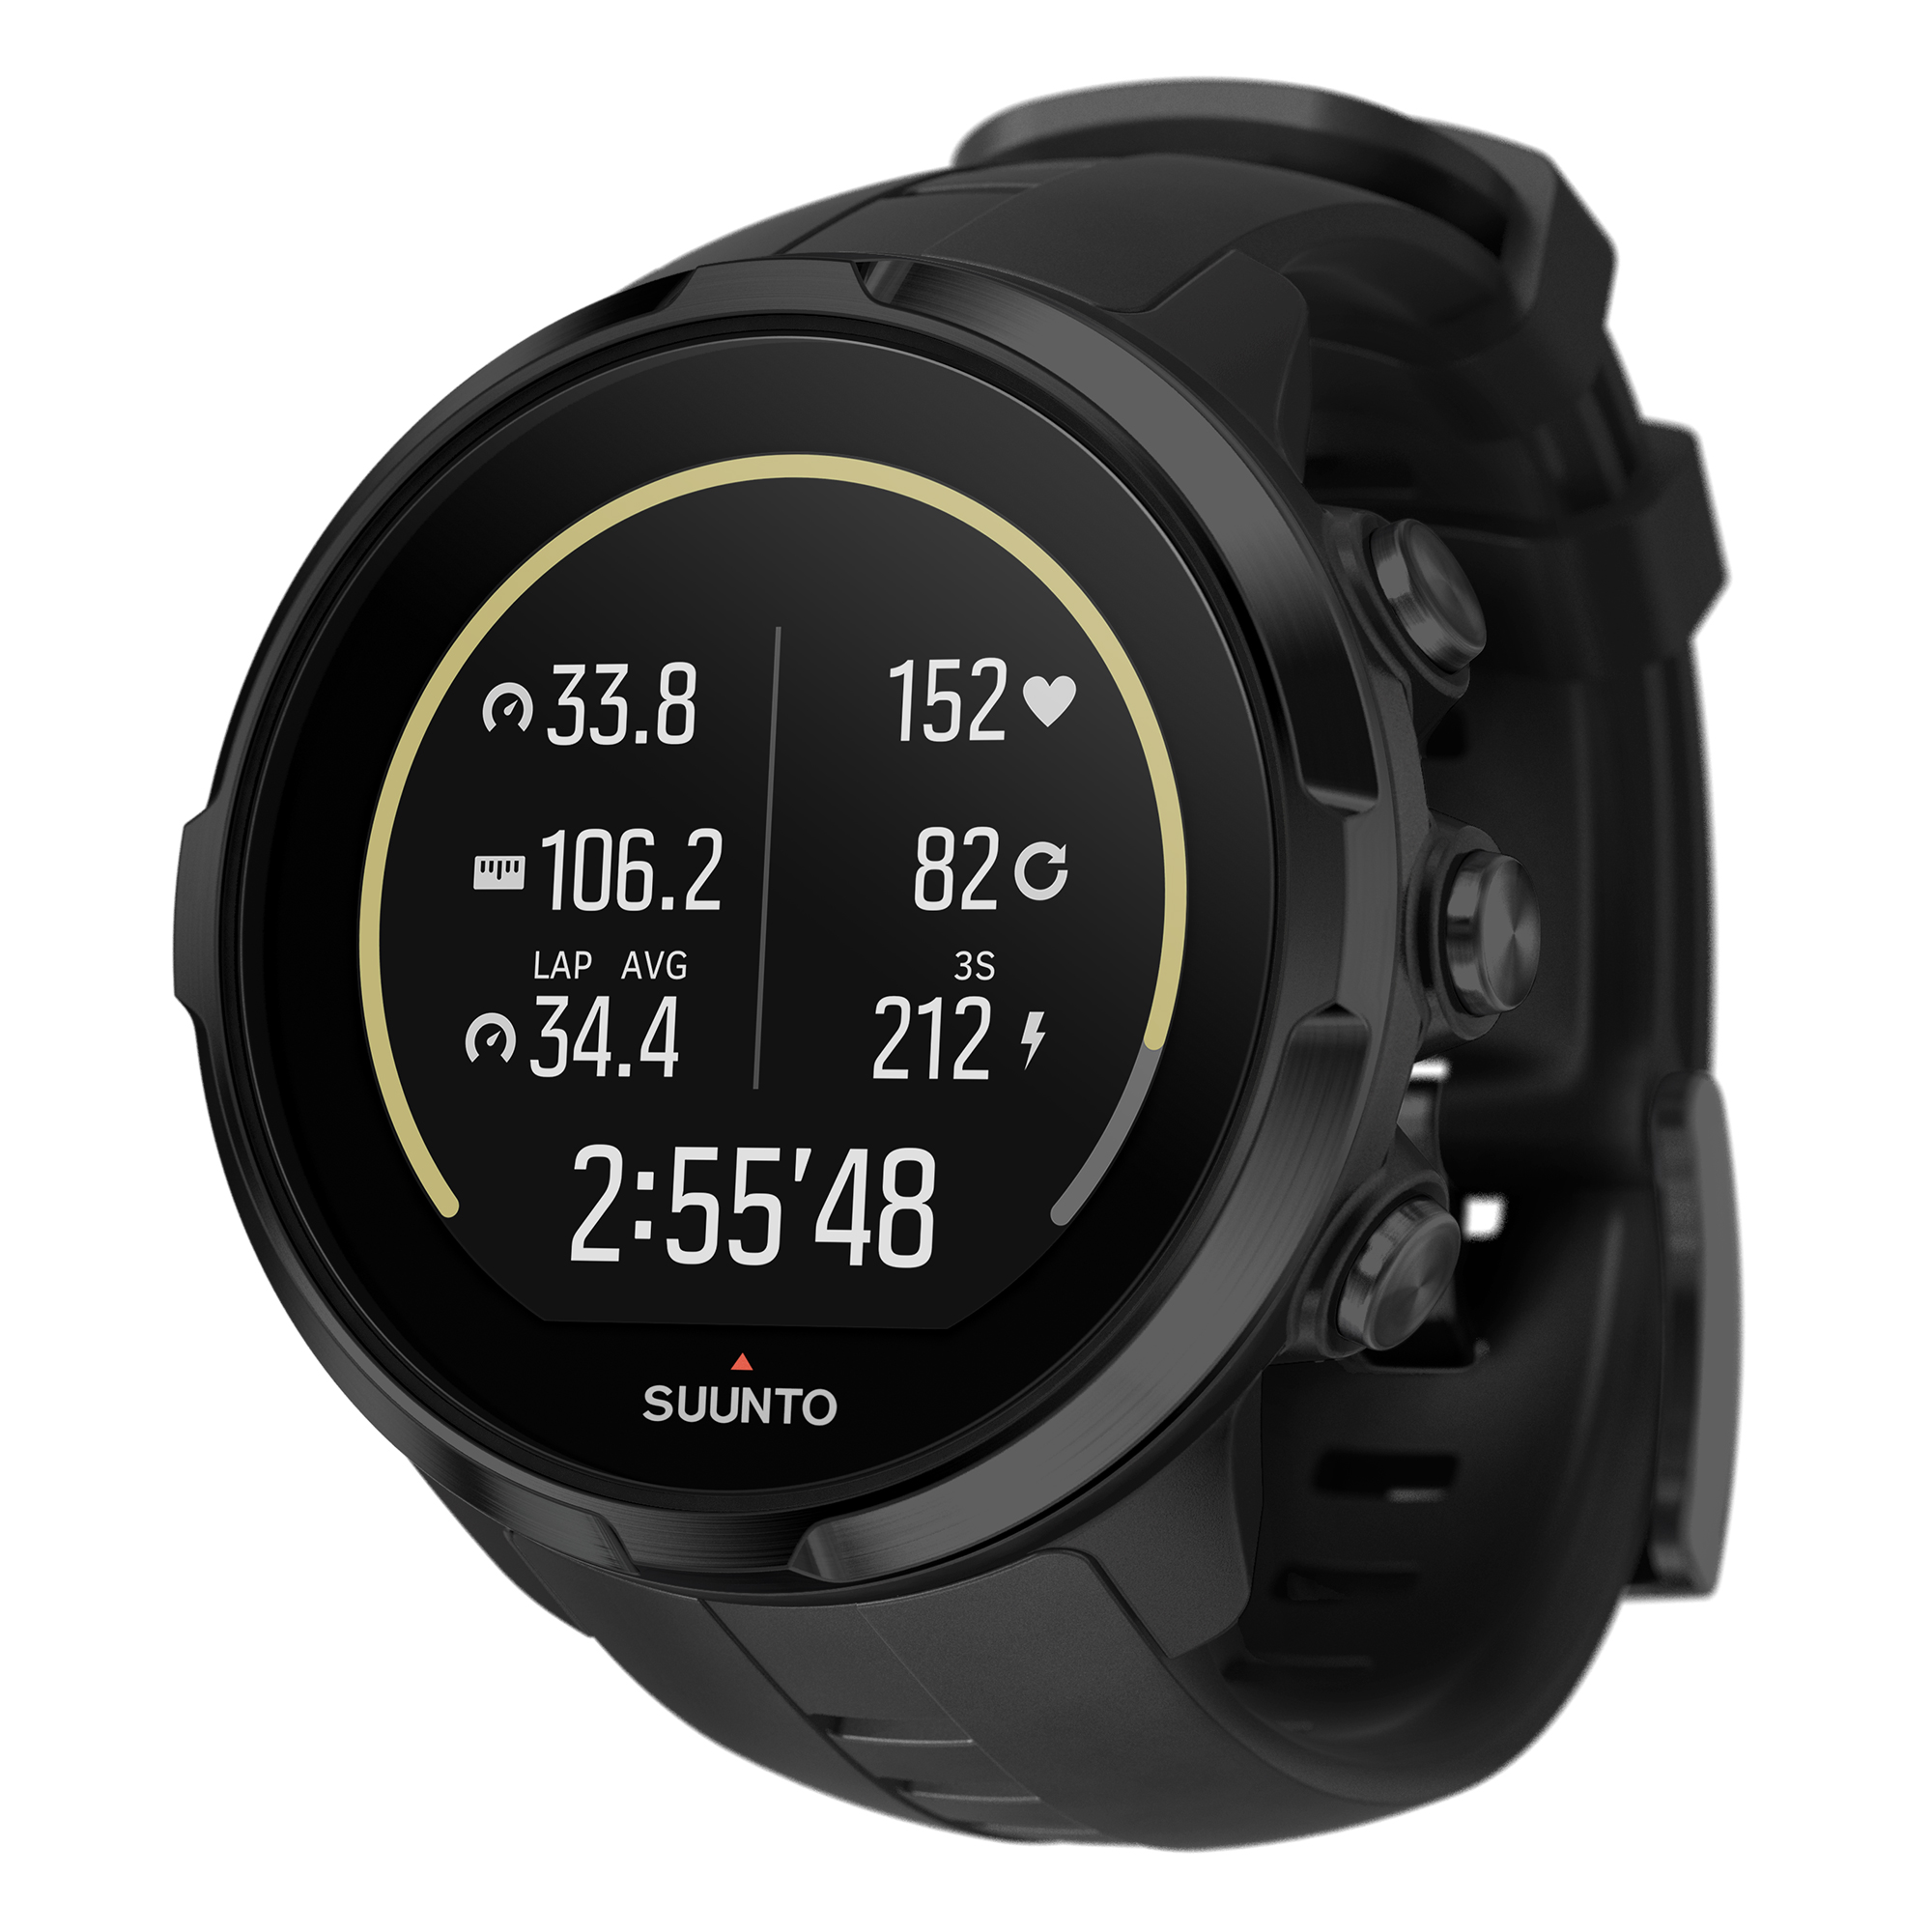 Suunto Spartan Sport Wrist HR Watch, Black by Suunto